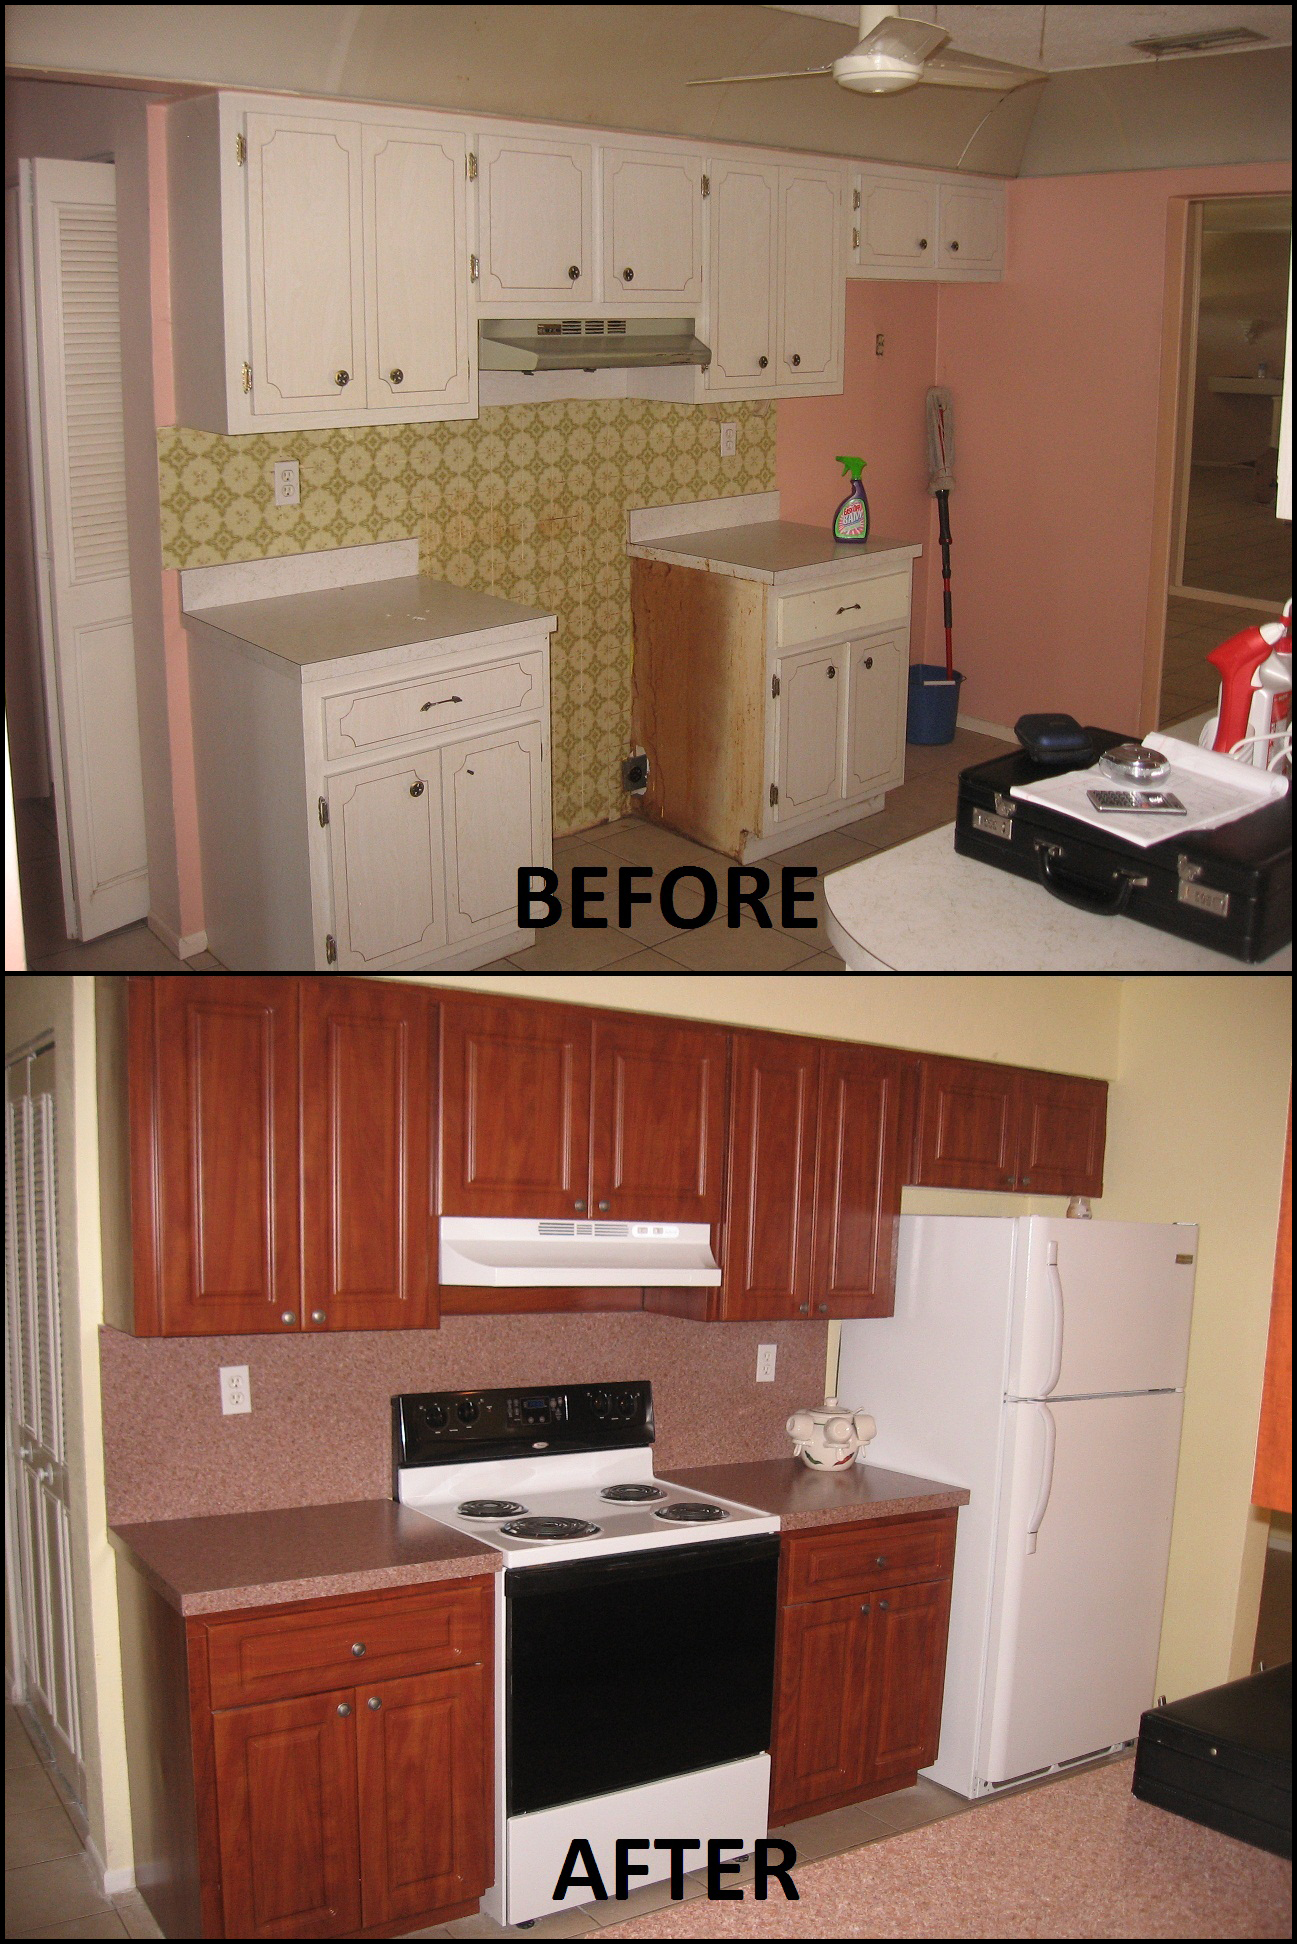 Refacing Kitchen Cabinets Cost Estimate Before And After Pictures Of Kitchen Cabinet Refacing Call